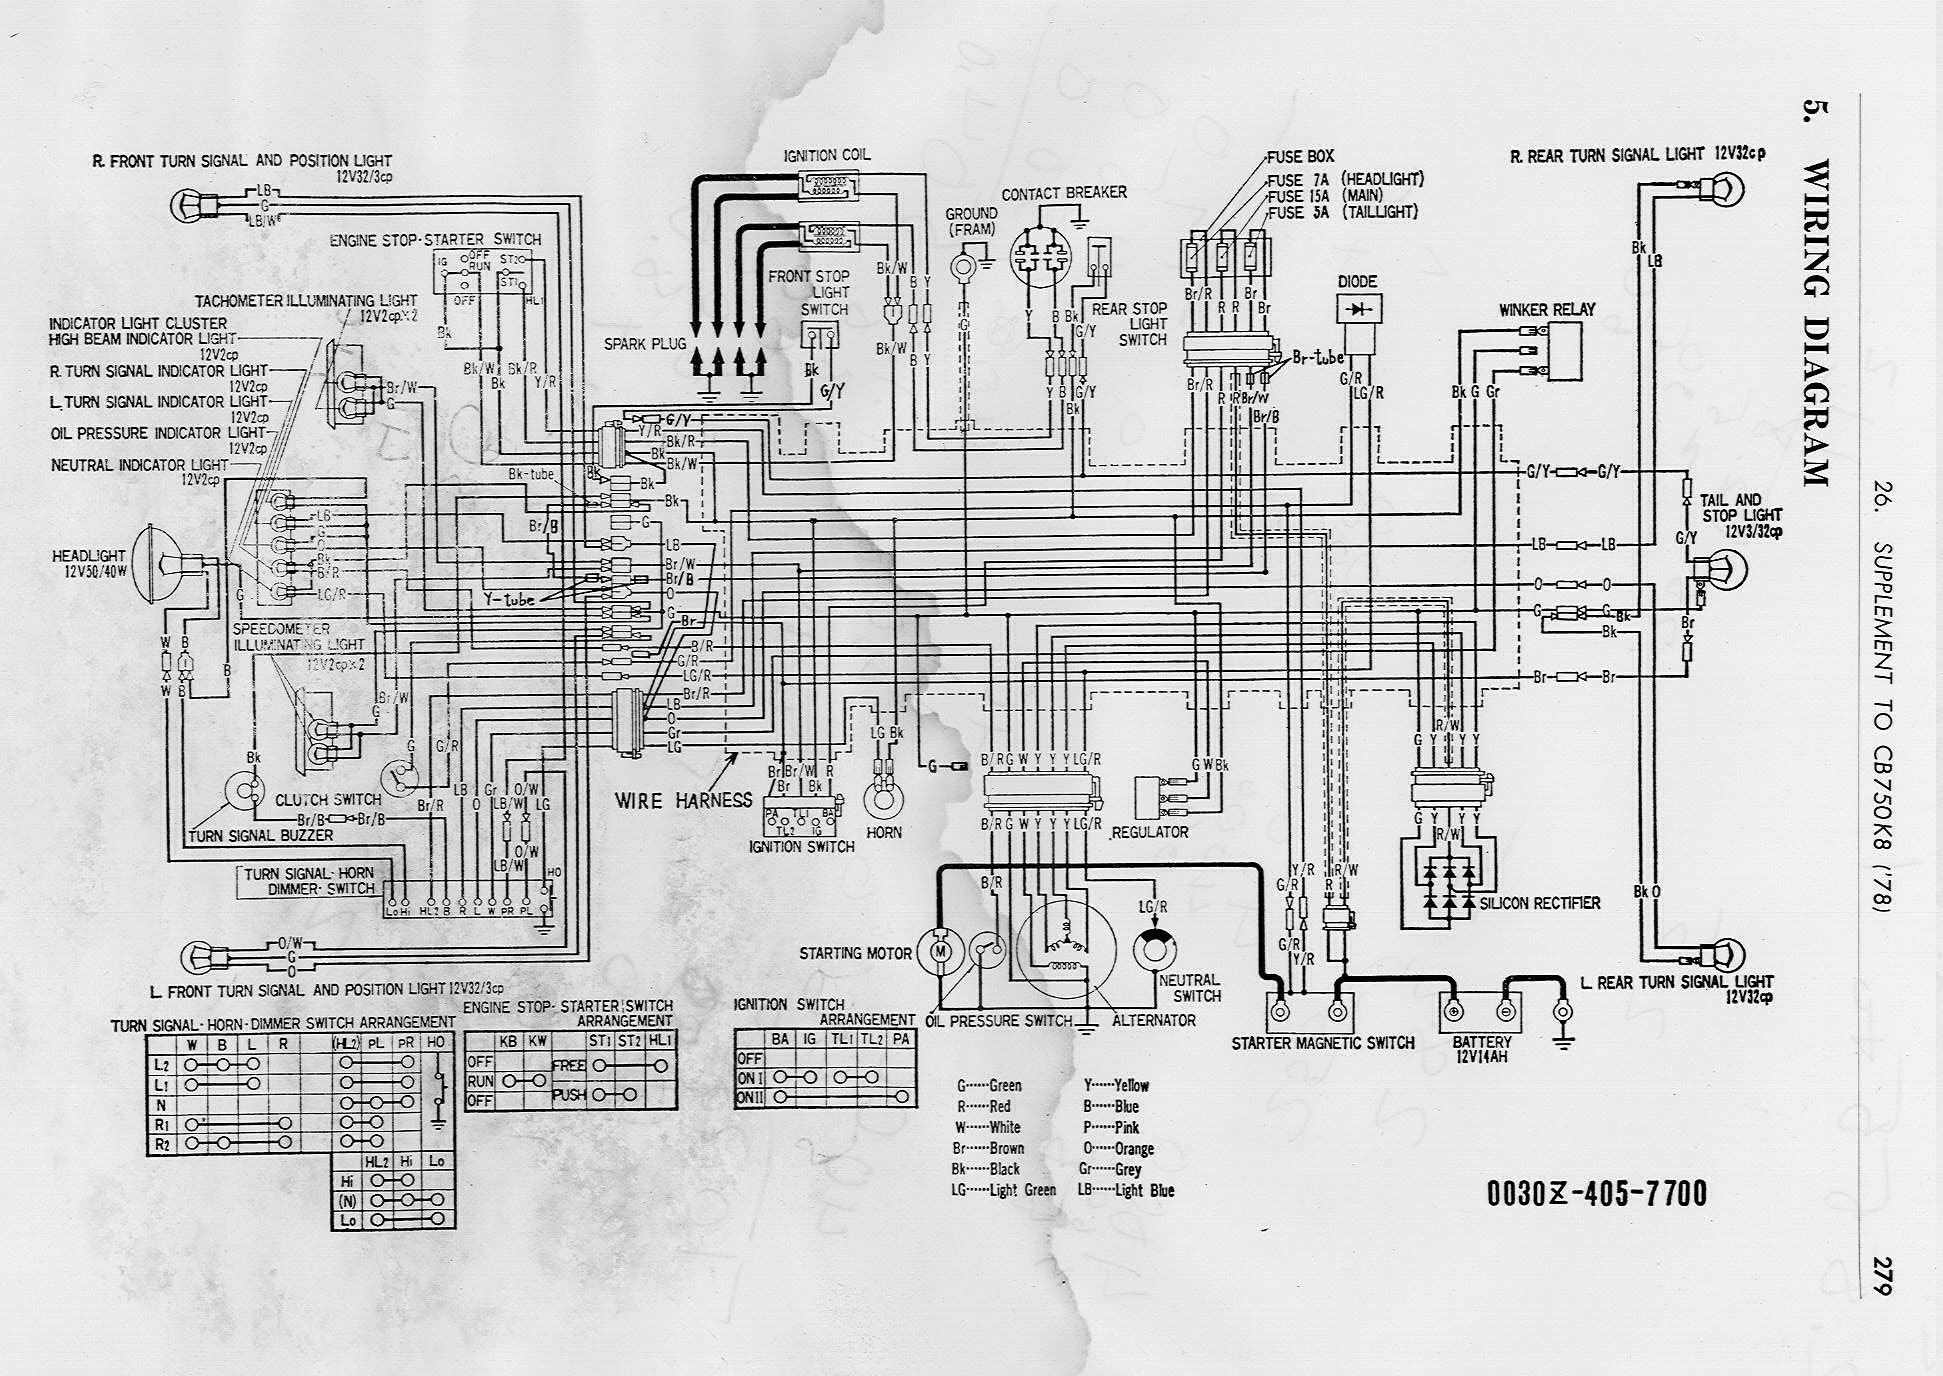 [DIAGRAM] Honda Nighthawk 750 Wiring Diagram FULL Version